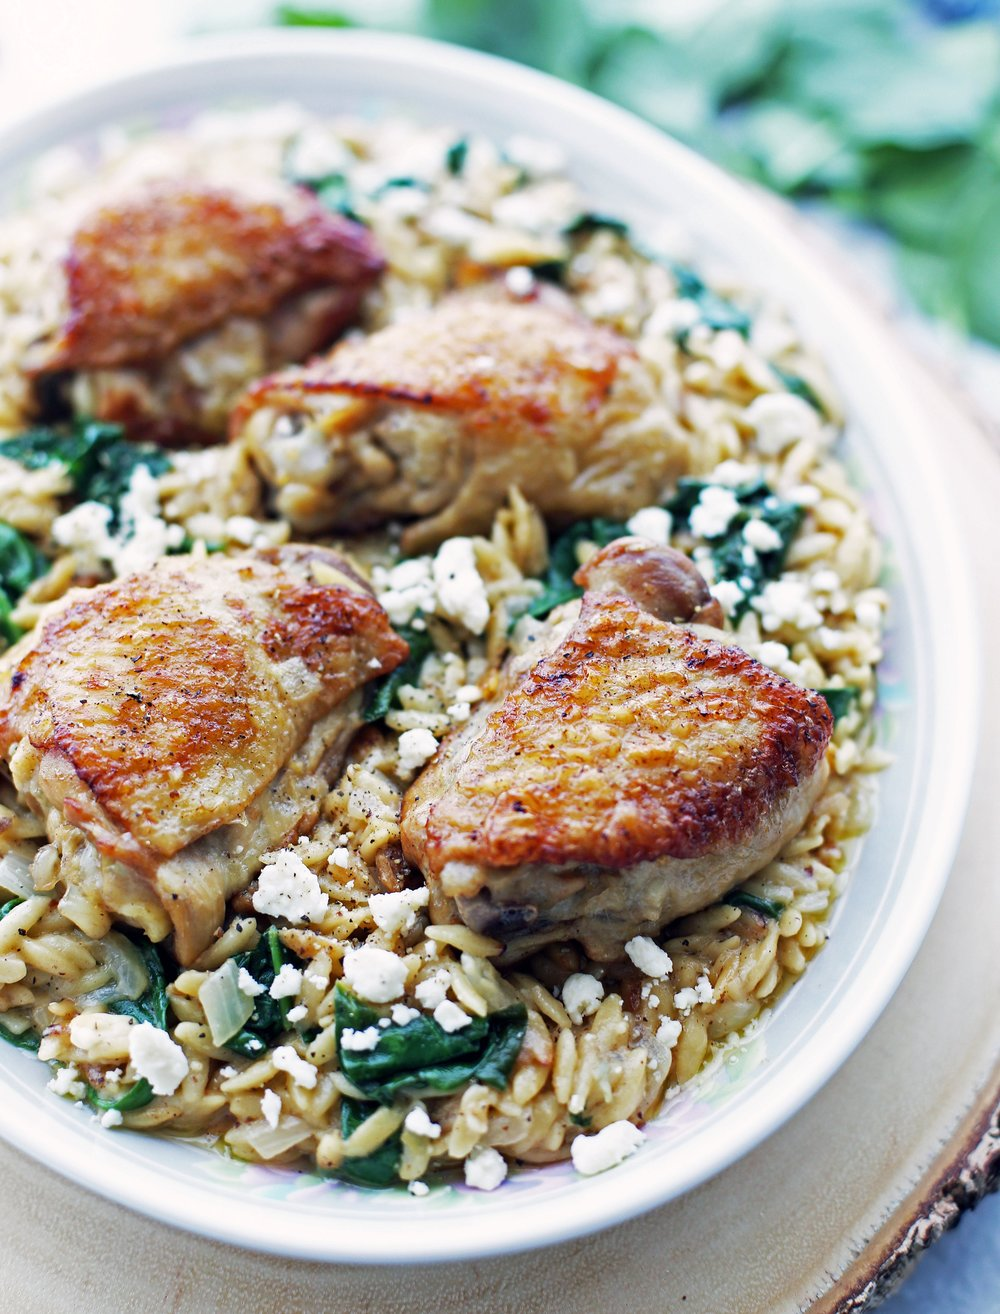 A large oval platter holding Instant Pot Lemon Pepper Orzo with Chicken Thighs.